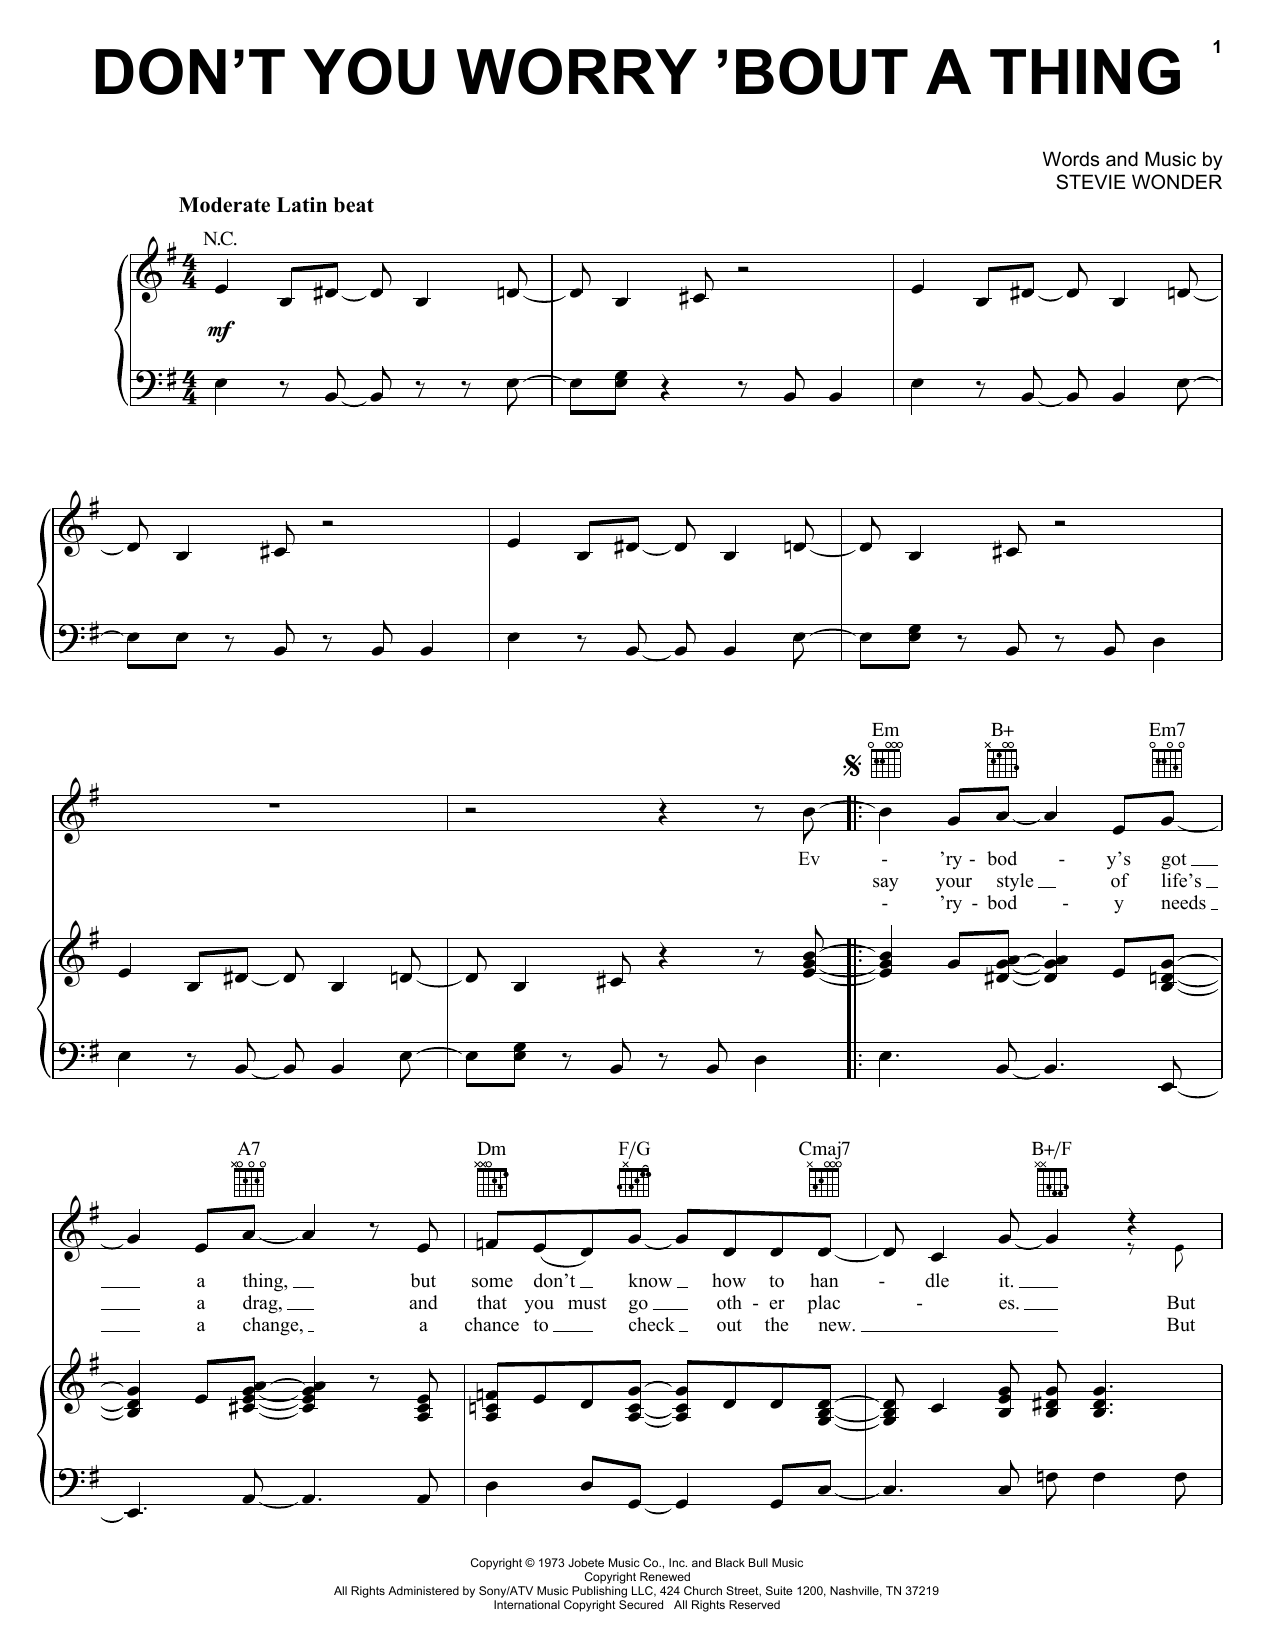 Don't You Worry 'Bout A Thing sheet music